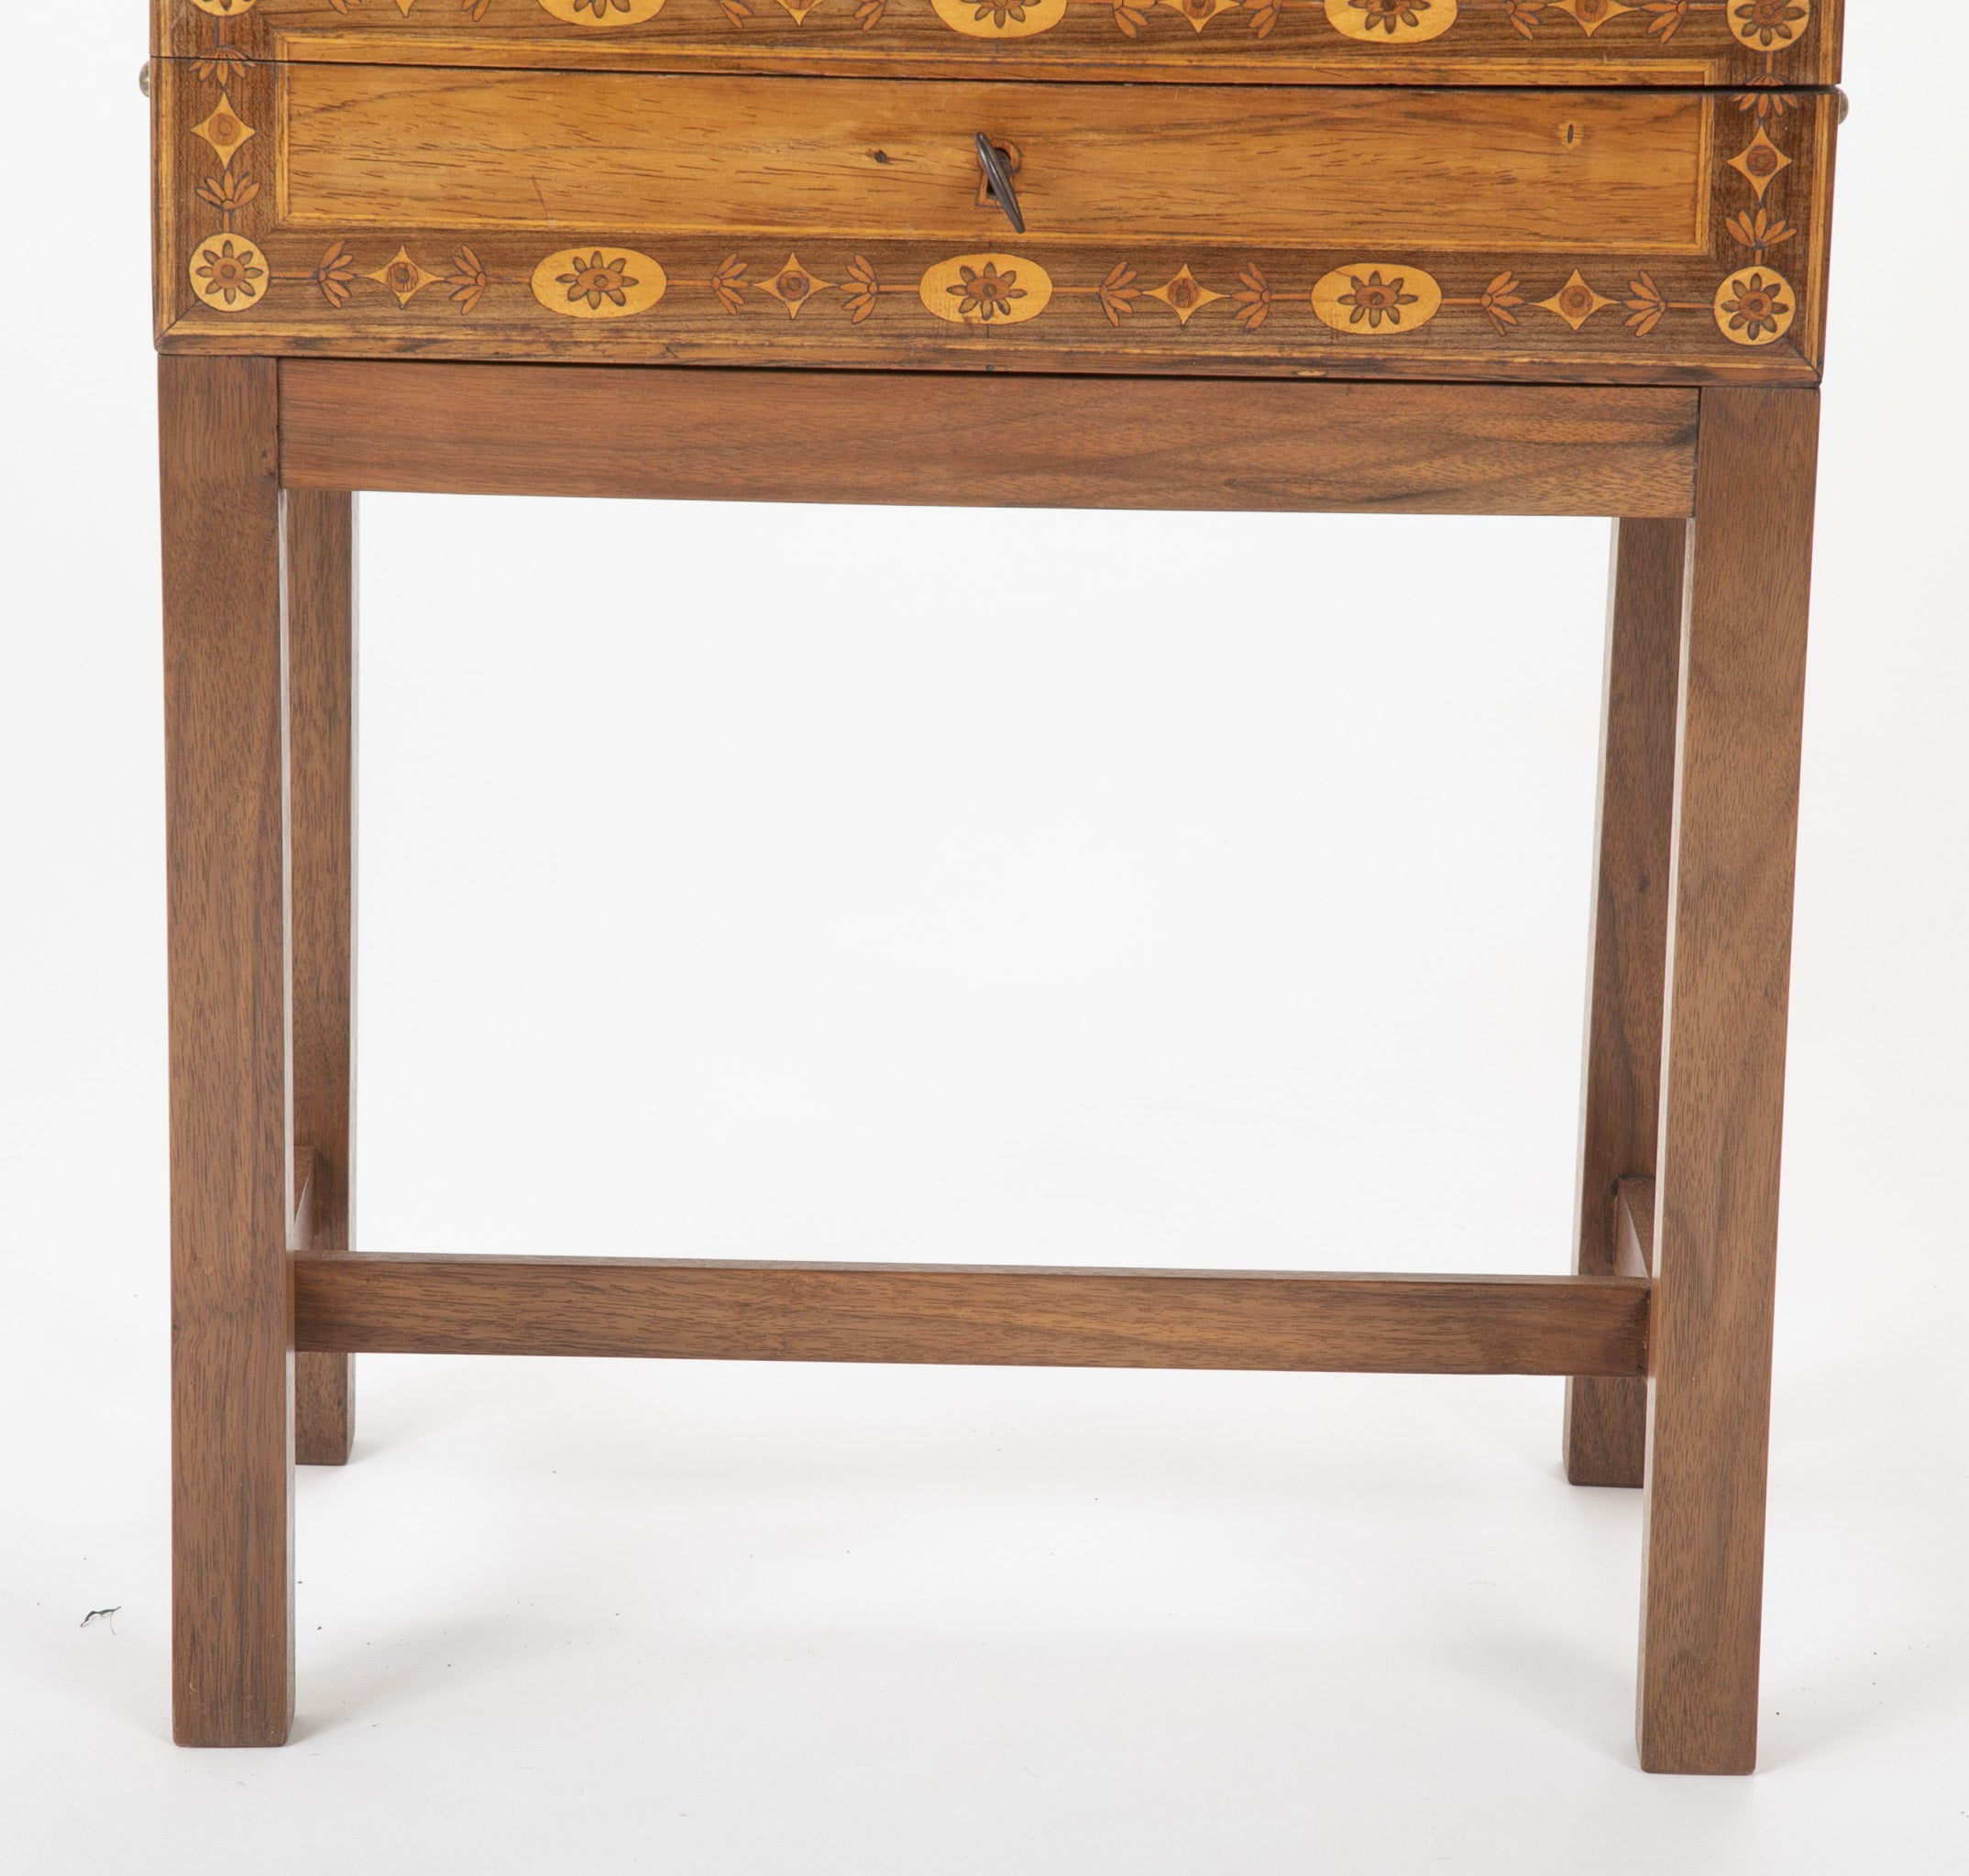 Late 18th Century Northern Italian Travel Desk on Modern Stand